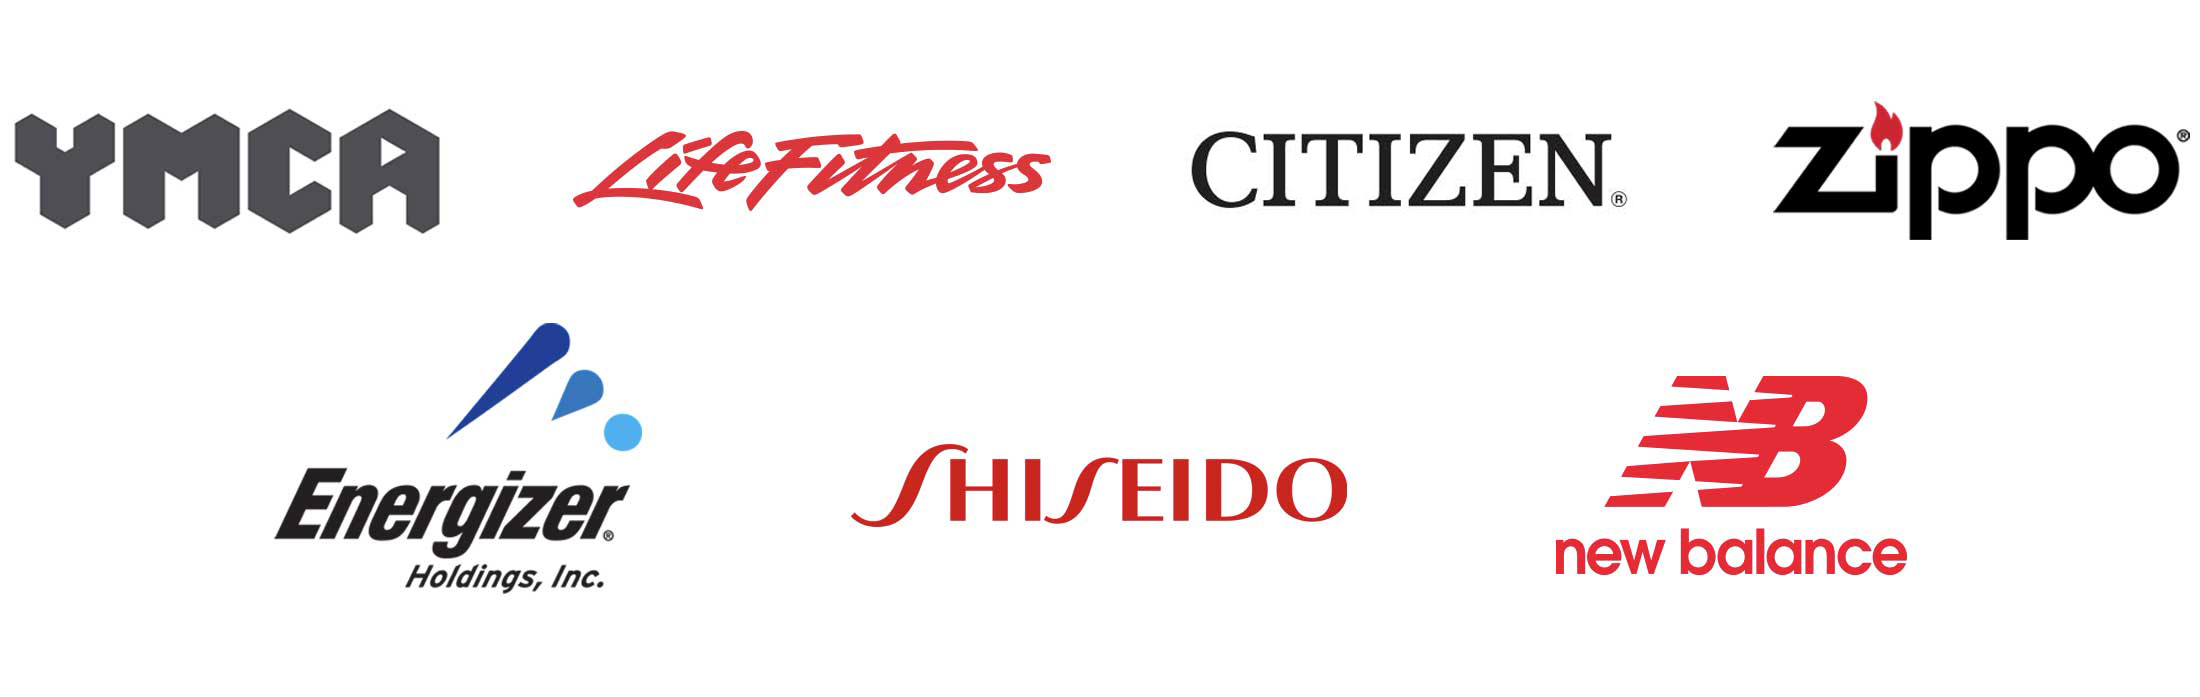 Widen Customers YMCA, LifeFitness, Citizen, Zippo, Energizer Holdings Inc, Shiseido, and New Balance